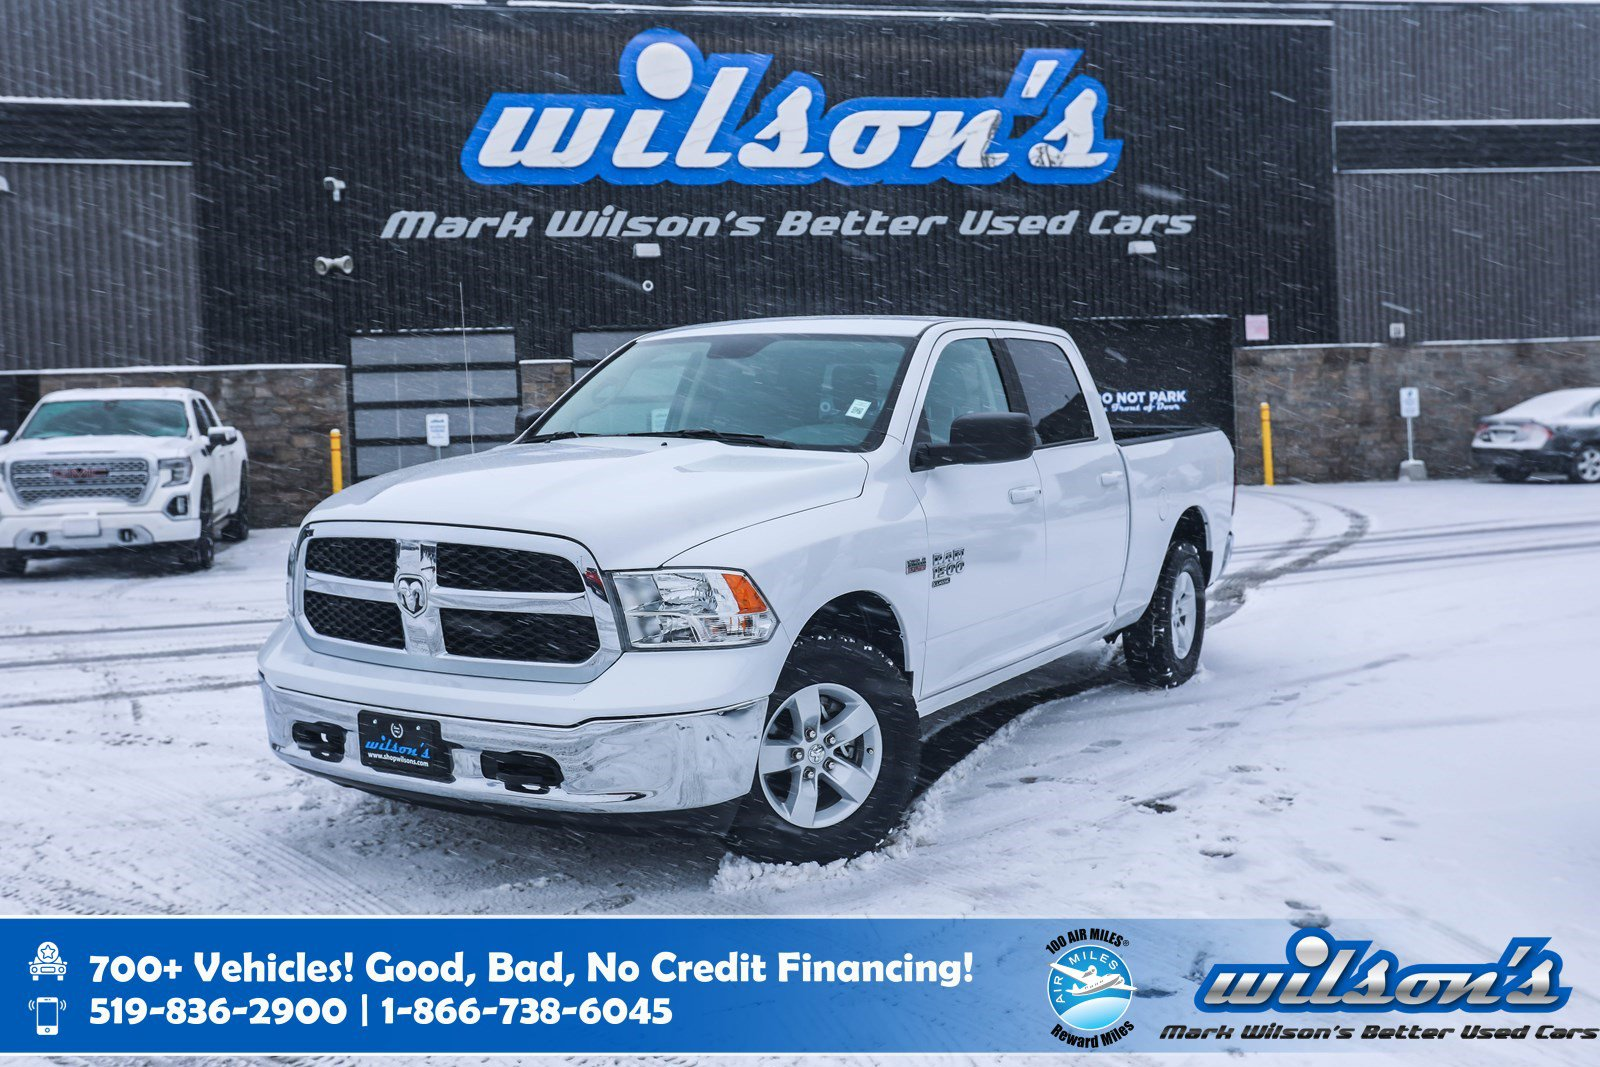 Certified Pre-Owned 2019 Ram 1500 Classic SLT Crew Cab 4x4 Hemi, Power Seat, Bluetooth Streaming, Rear Camera, 6FT Box and more!